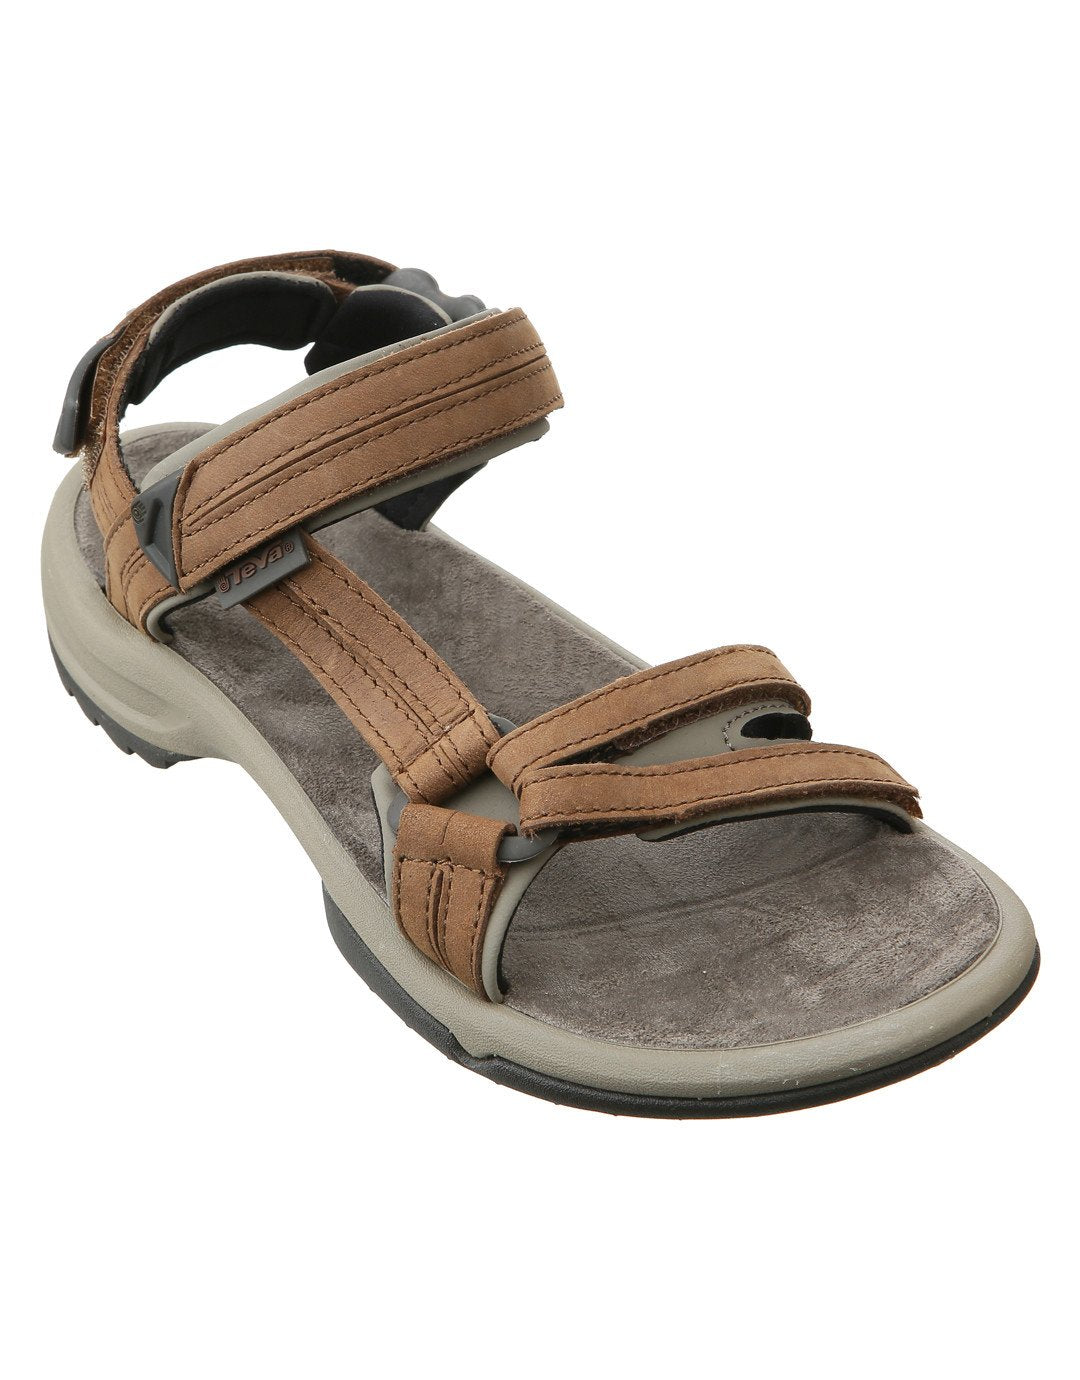 e7ed4b1fb48fbc Teva Womens Terra Fi Lite Leather Sandal - Brown